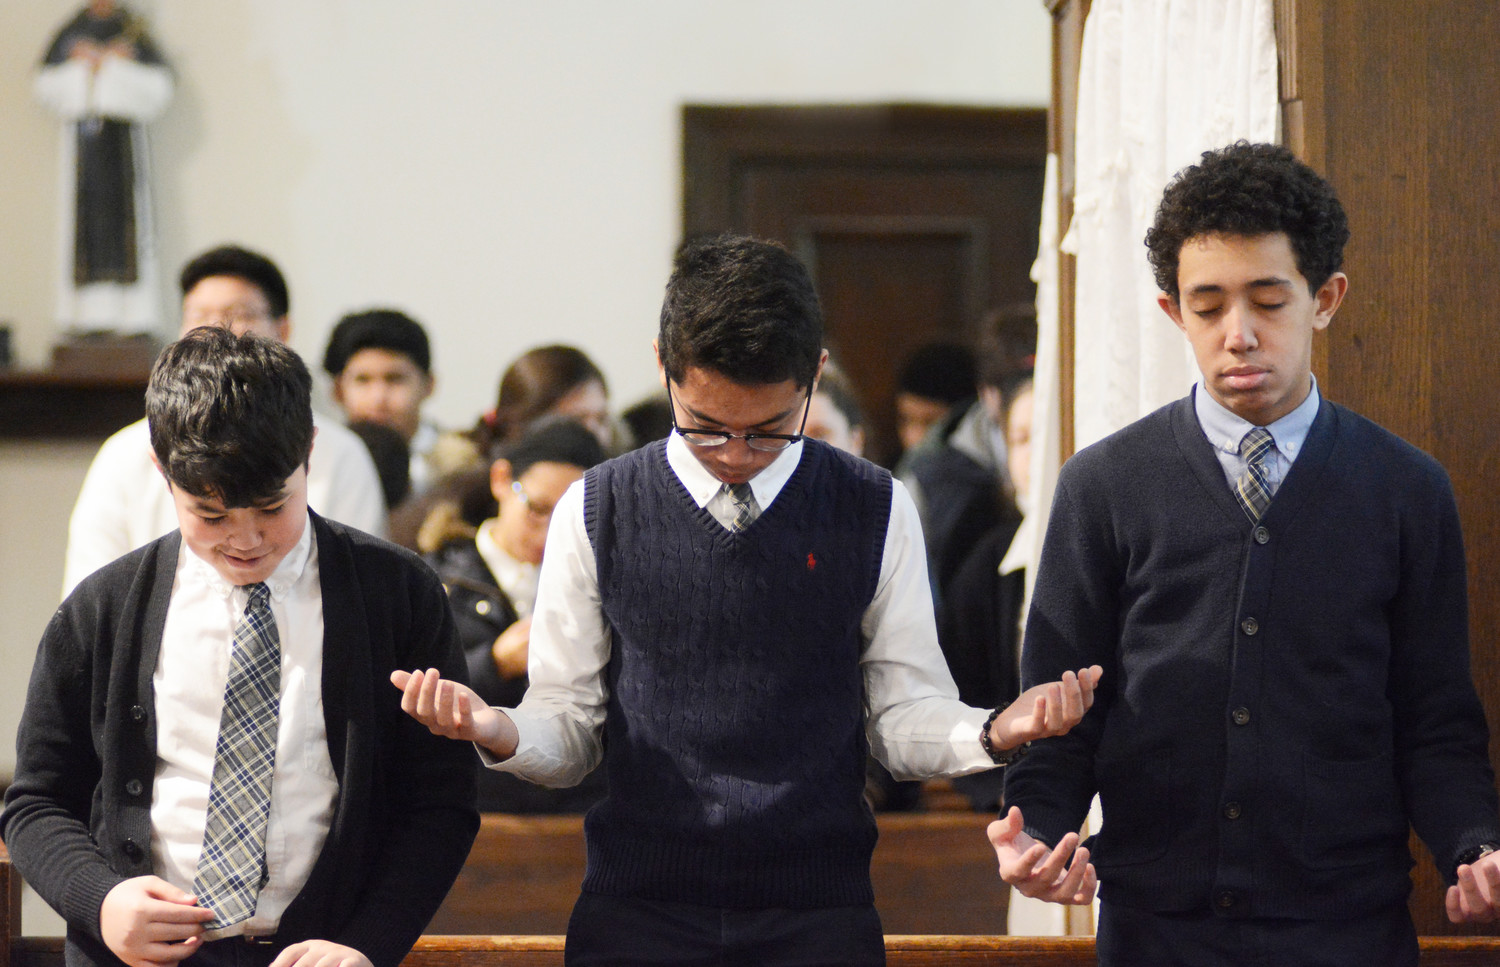 About 450 eighth-grade students from 15 Catholic schools in the Northwest/South Bronx Region of the archdiocese attended the the Eighth-Grade Mass of Solidarity for Hurricane Victims at St. John Chrysostom Church Jan. 24.